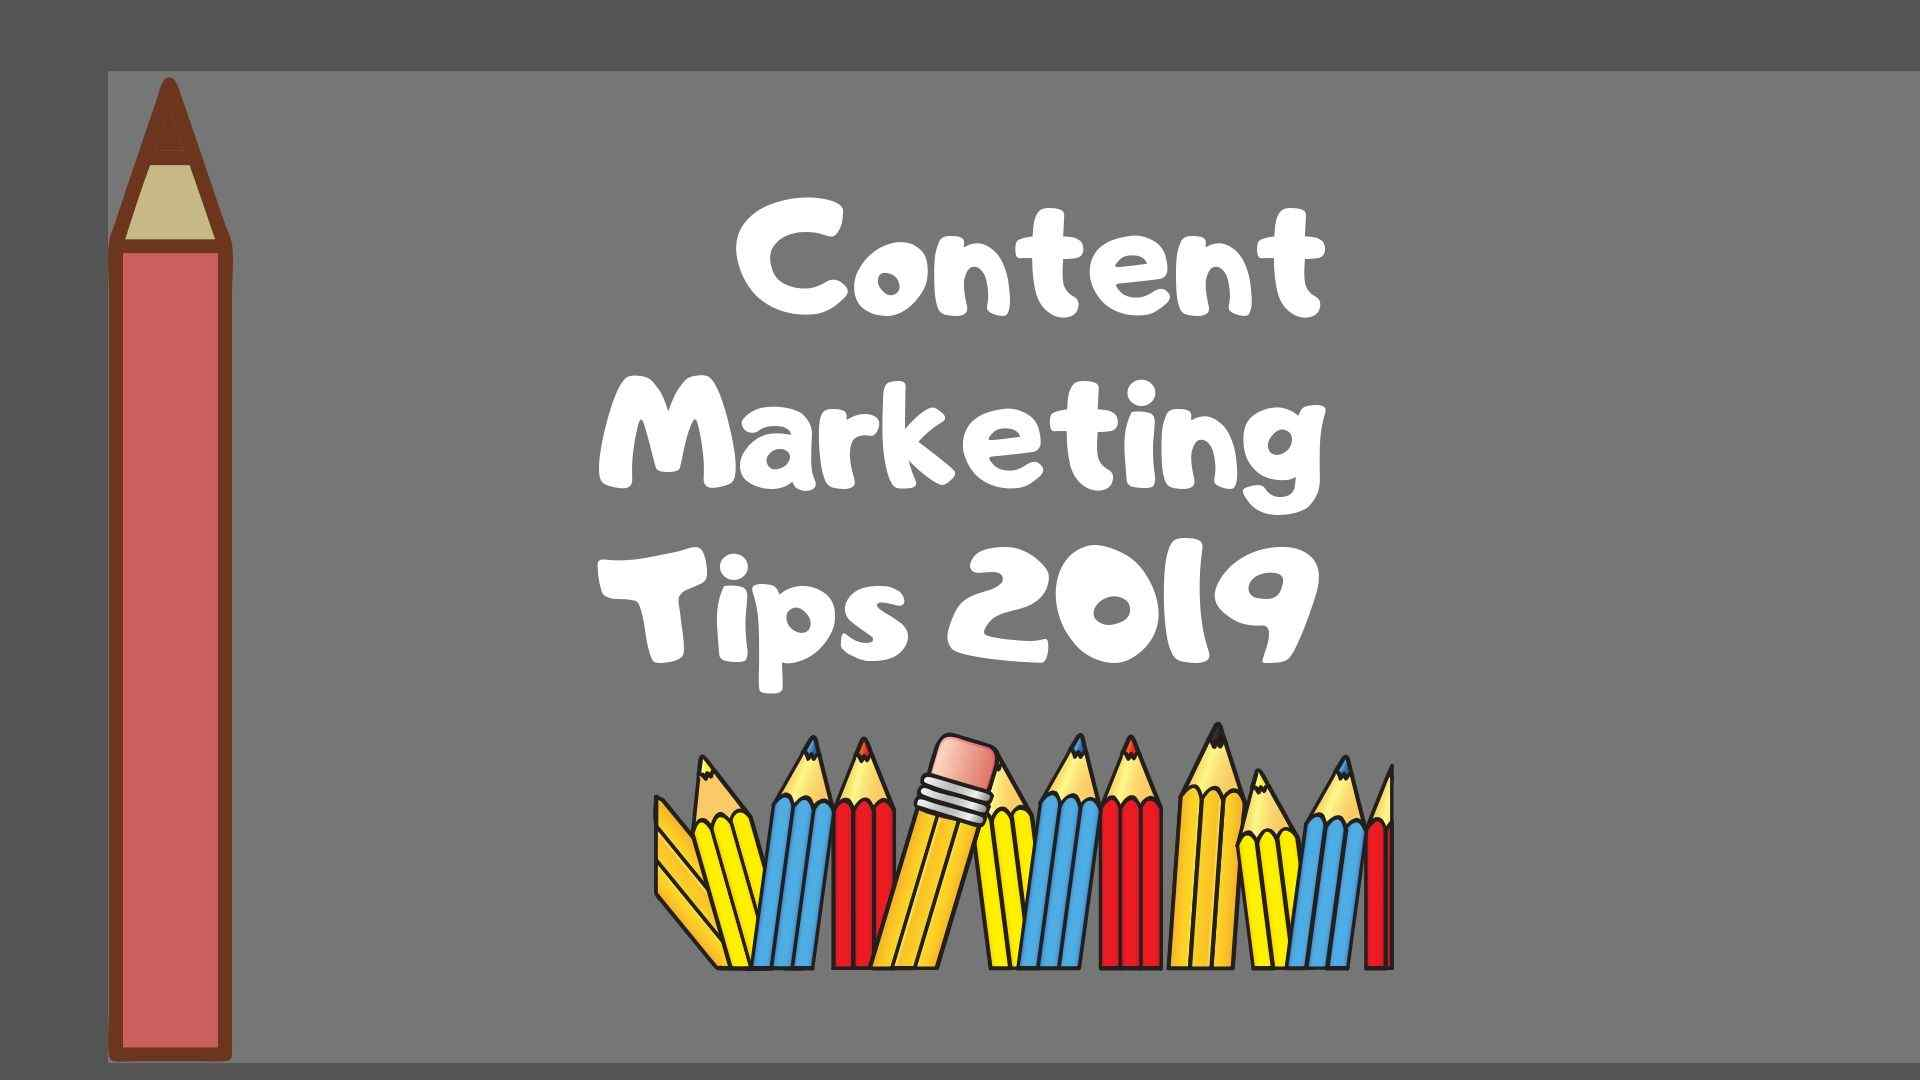 Content Marketing Tips 2019